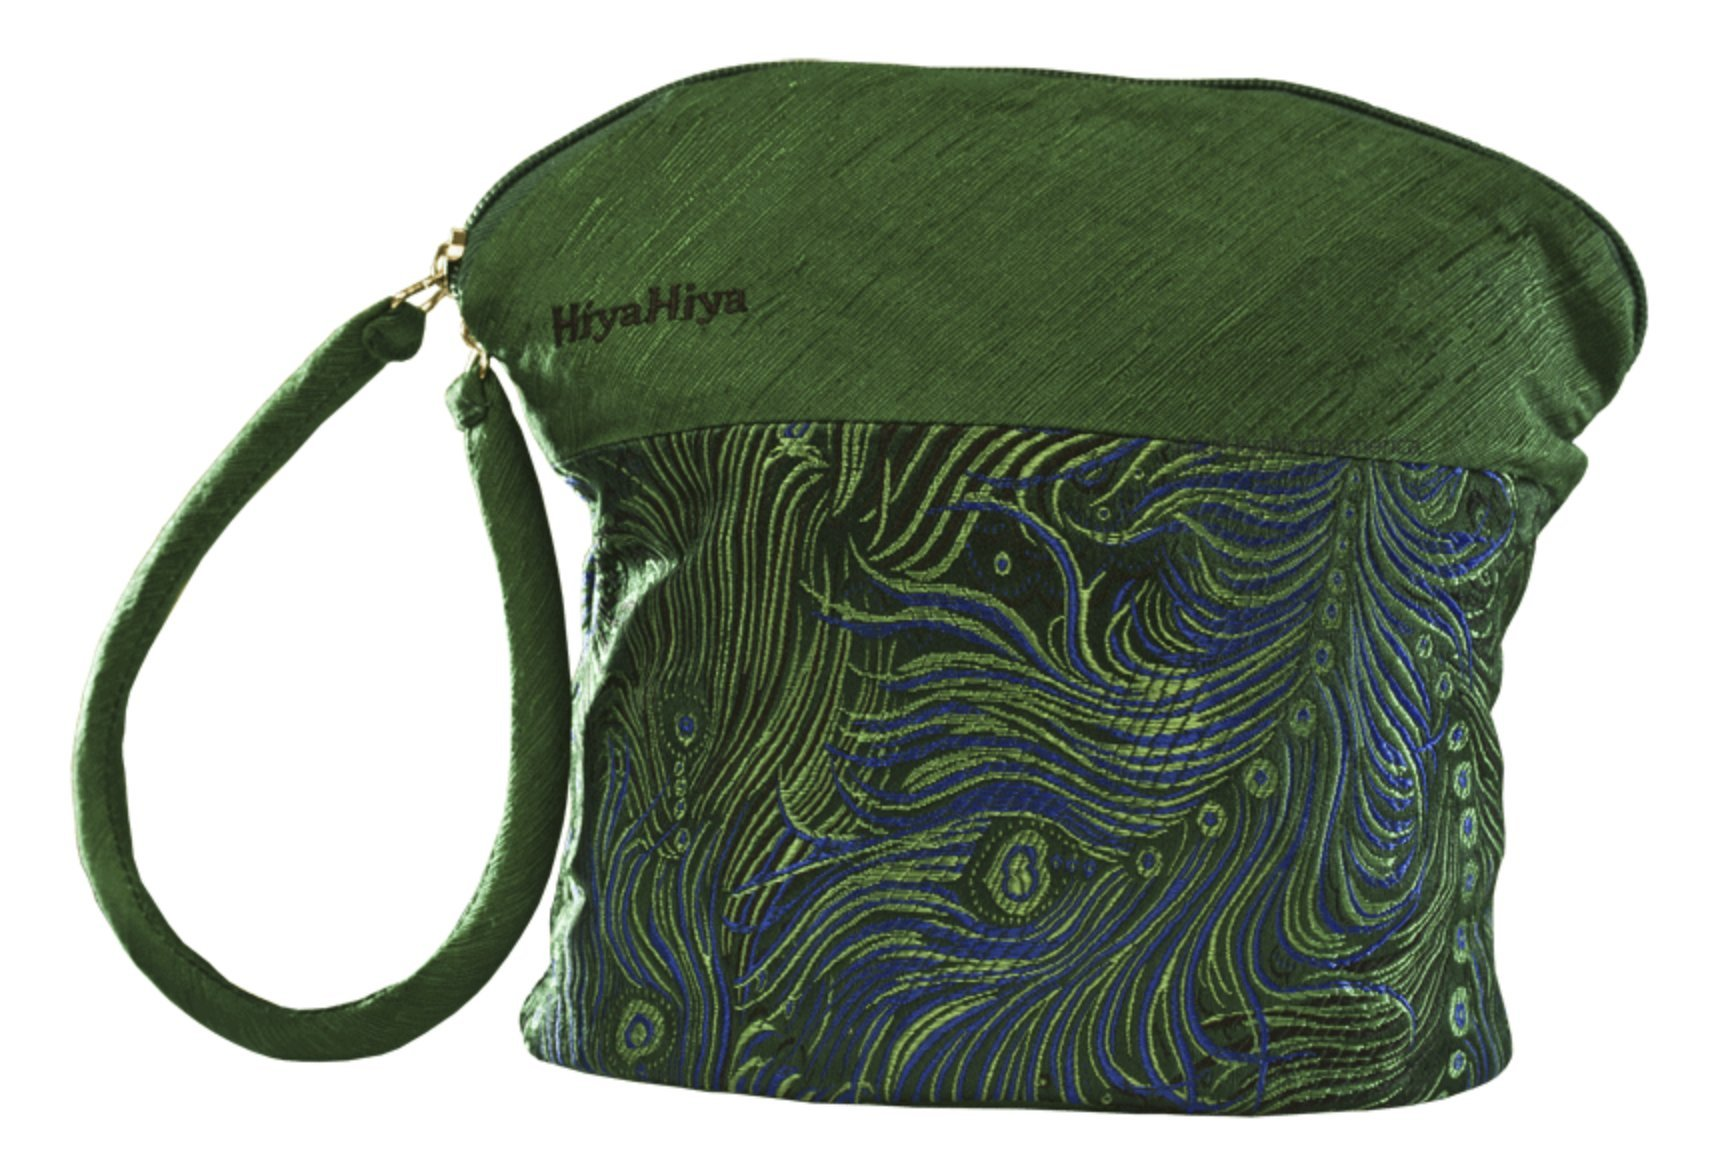 HiyaHiya Small Project Bag for Knit and Crochet - Green Feather